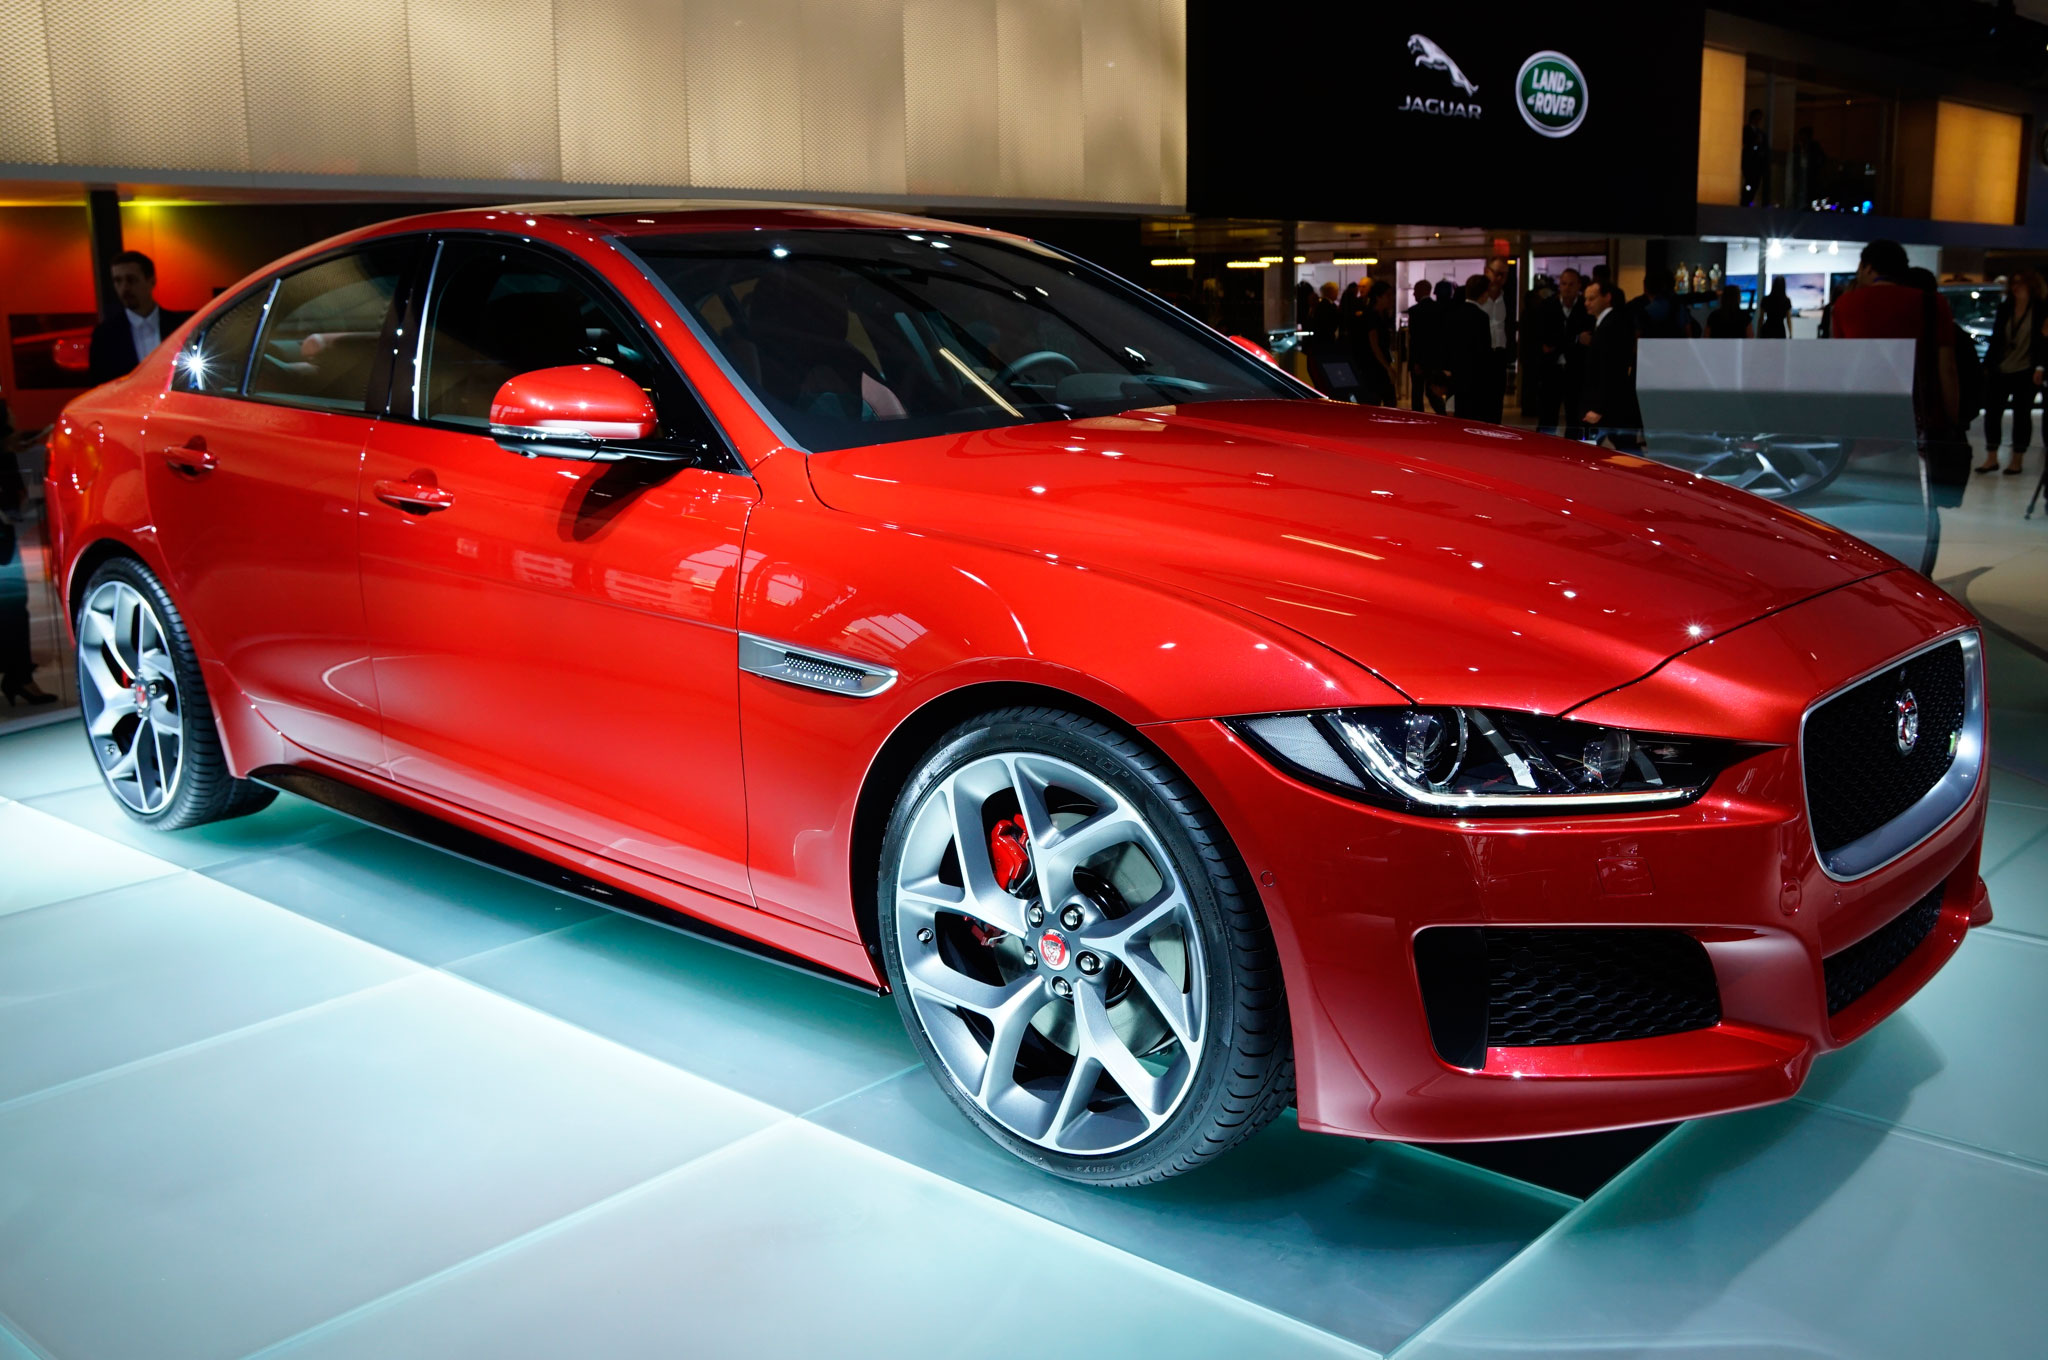 2016 Jaguar Xe Front Side Details (Photo 12 of 12)